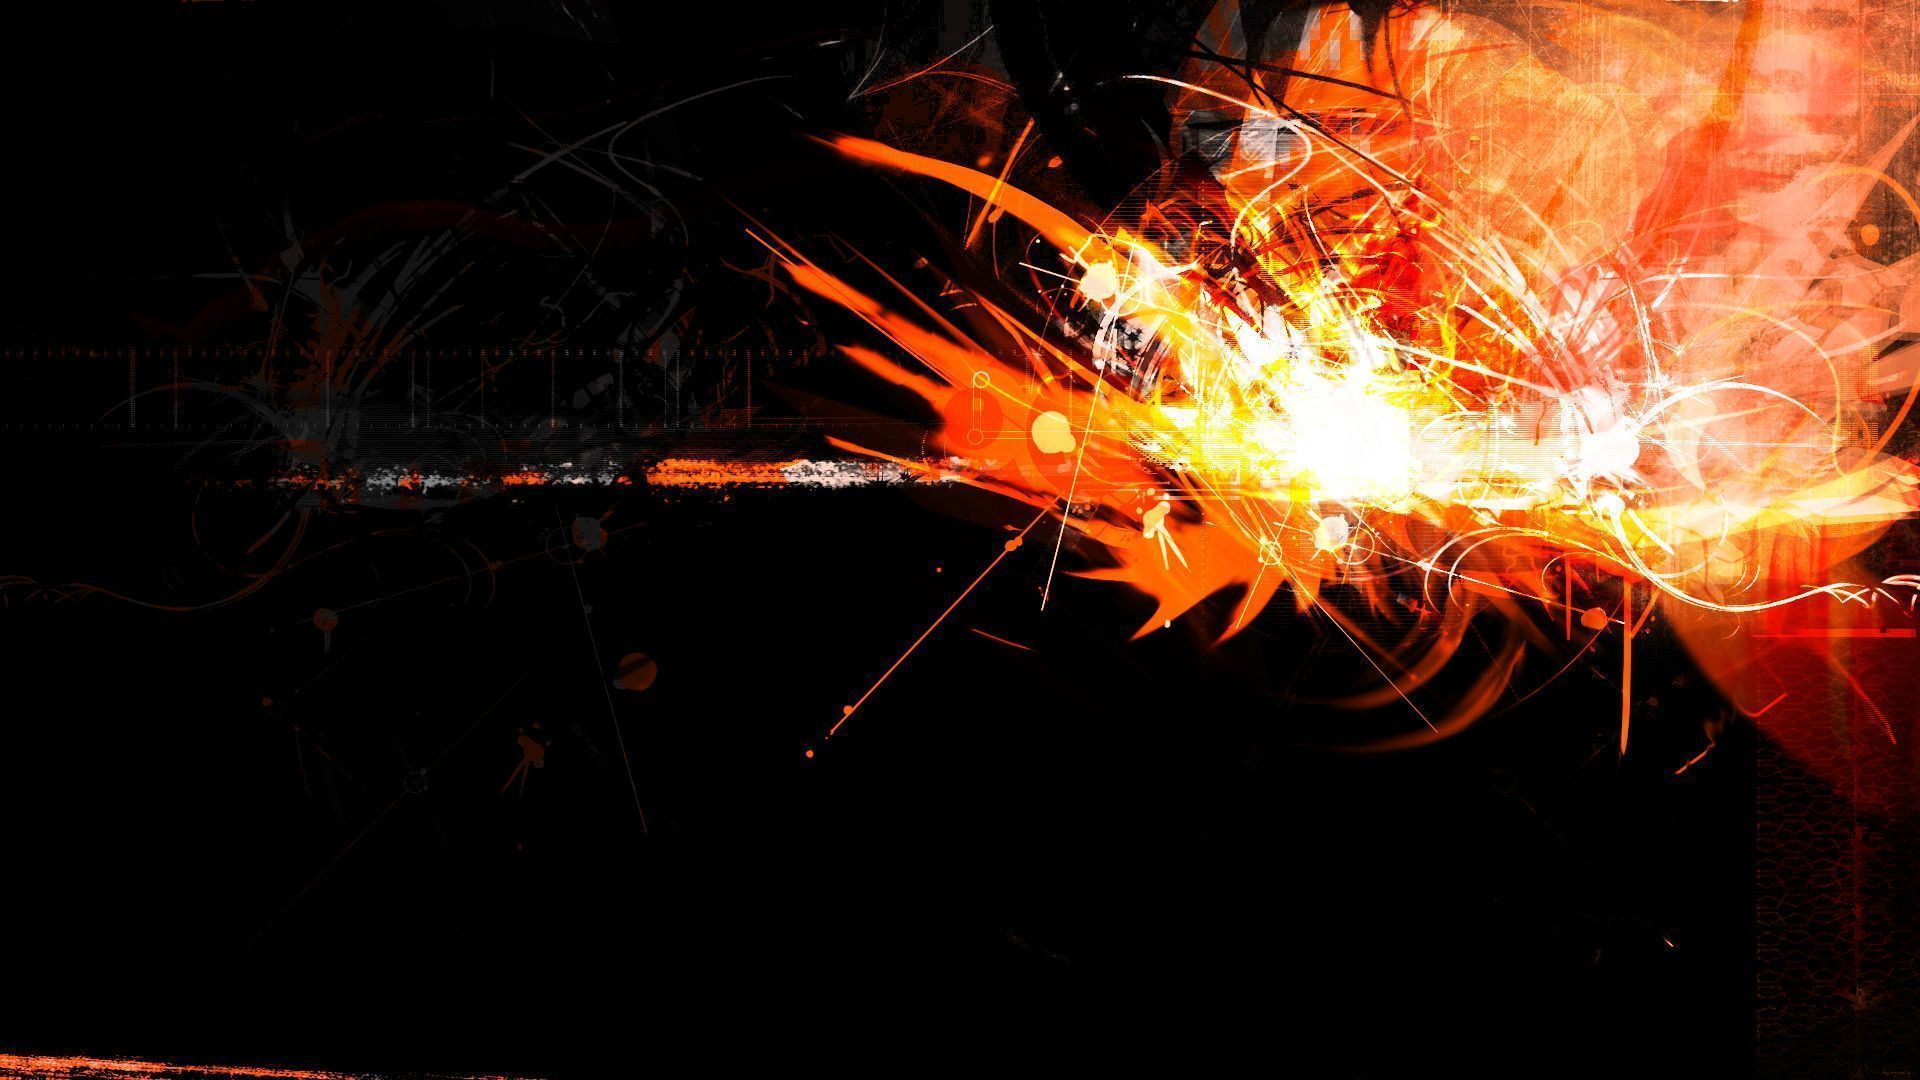 Black and orange abstract